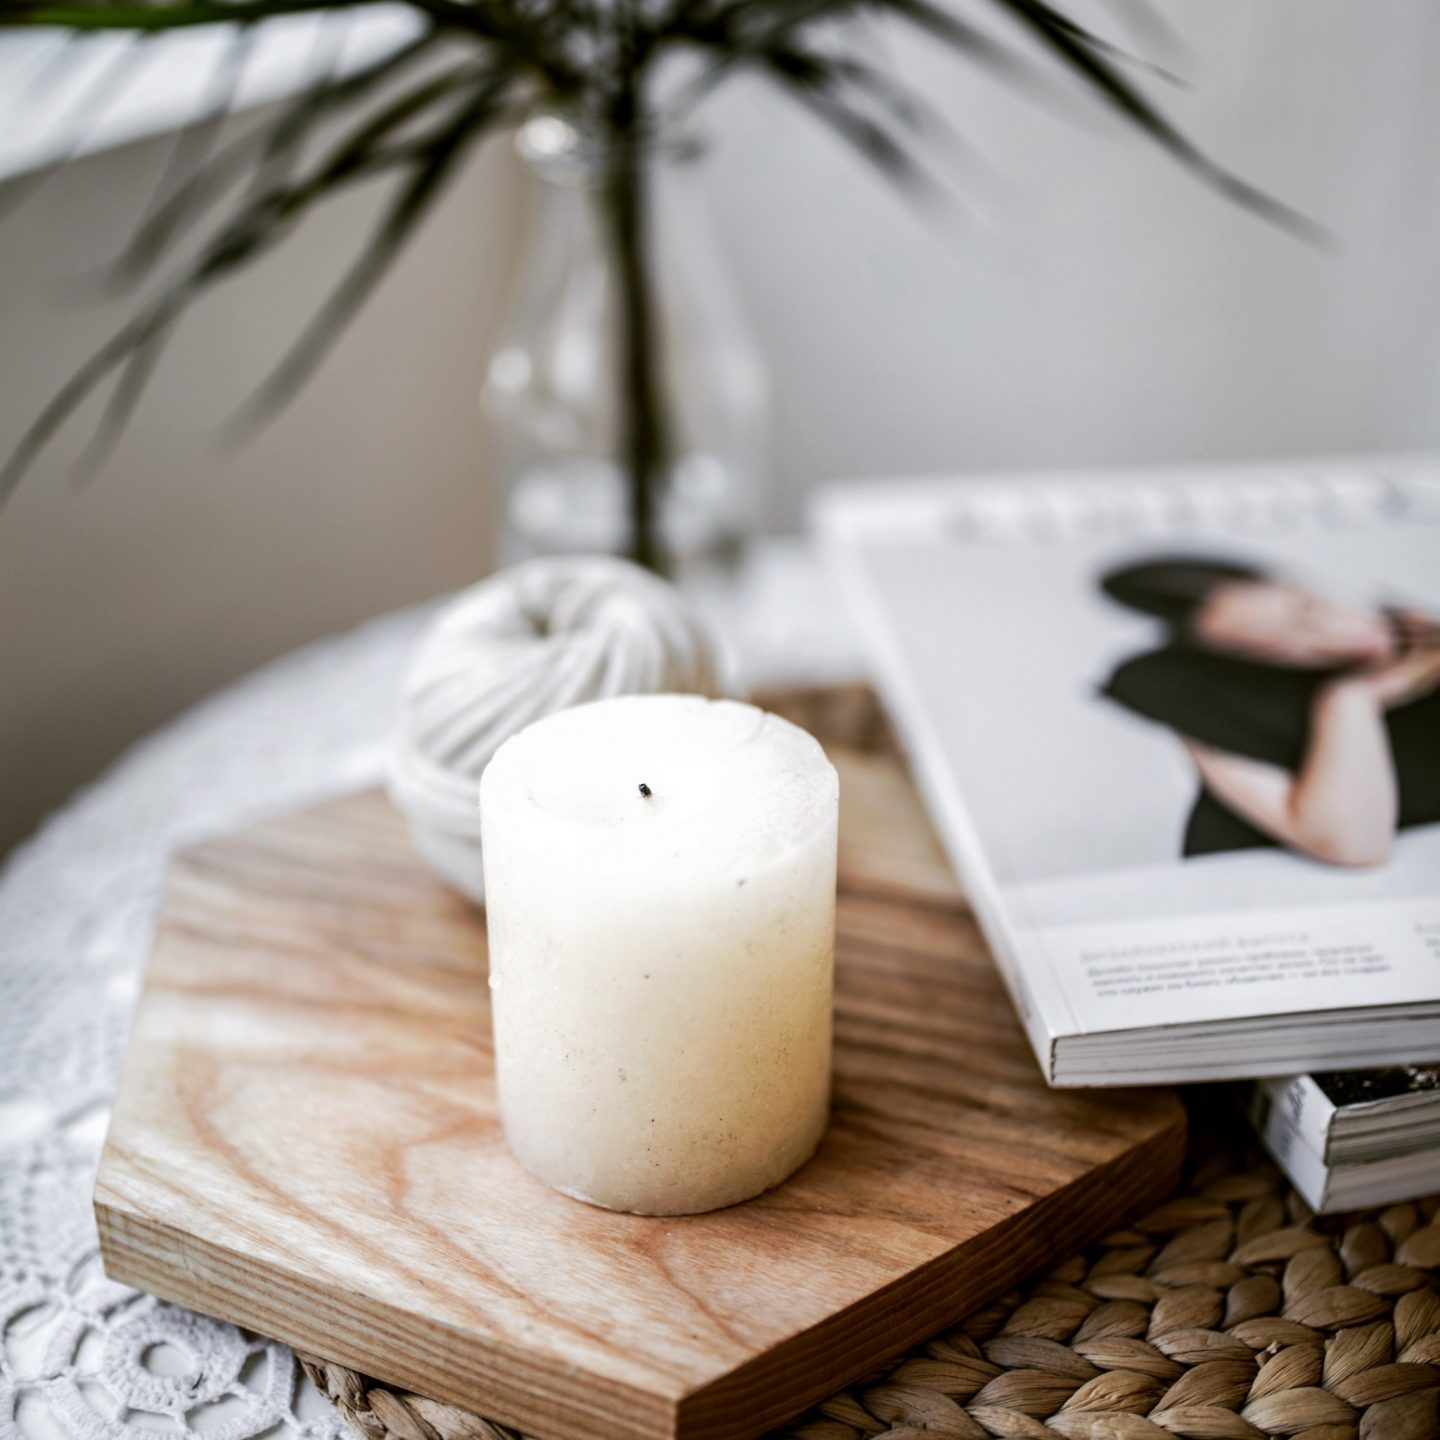 a cosy side table with a white candle which has had a small amount of burning on the wick next to a book